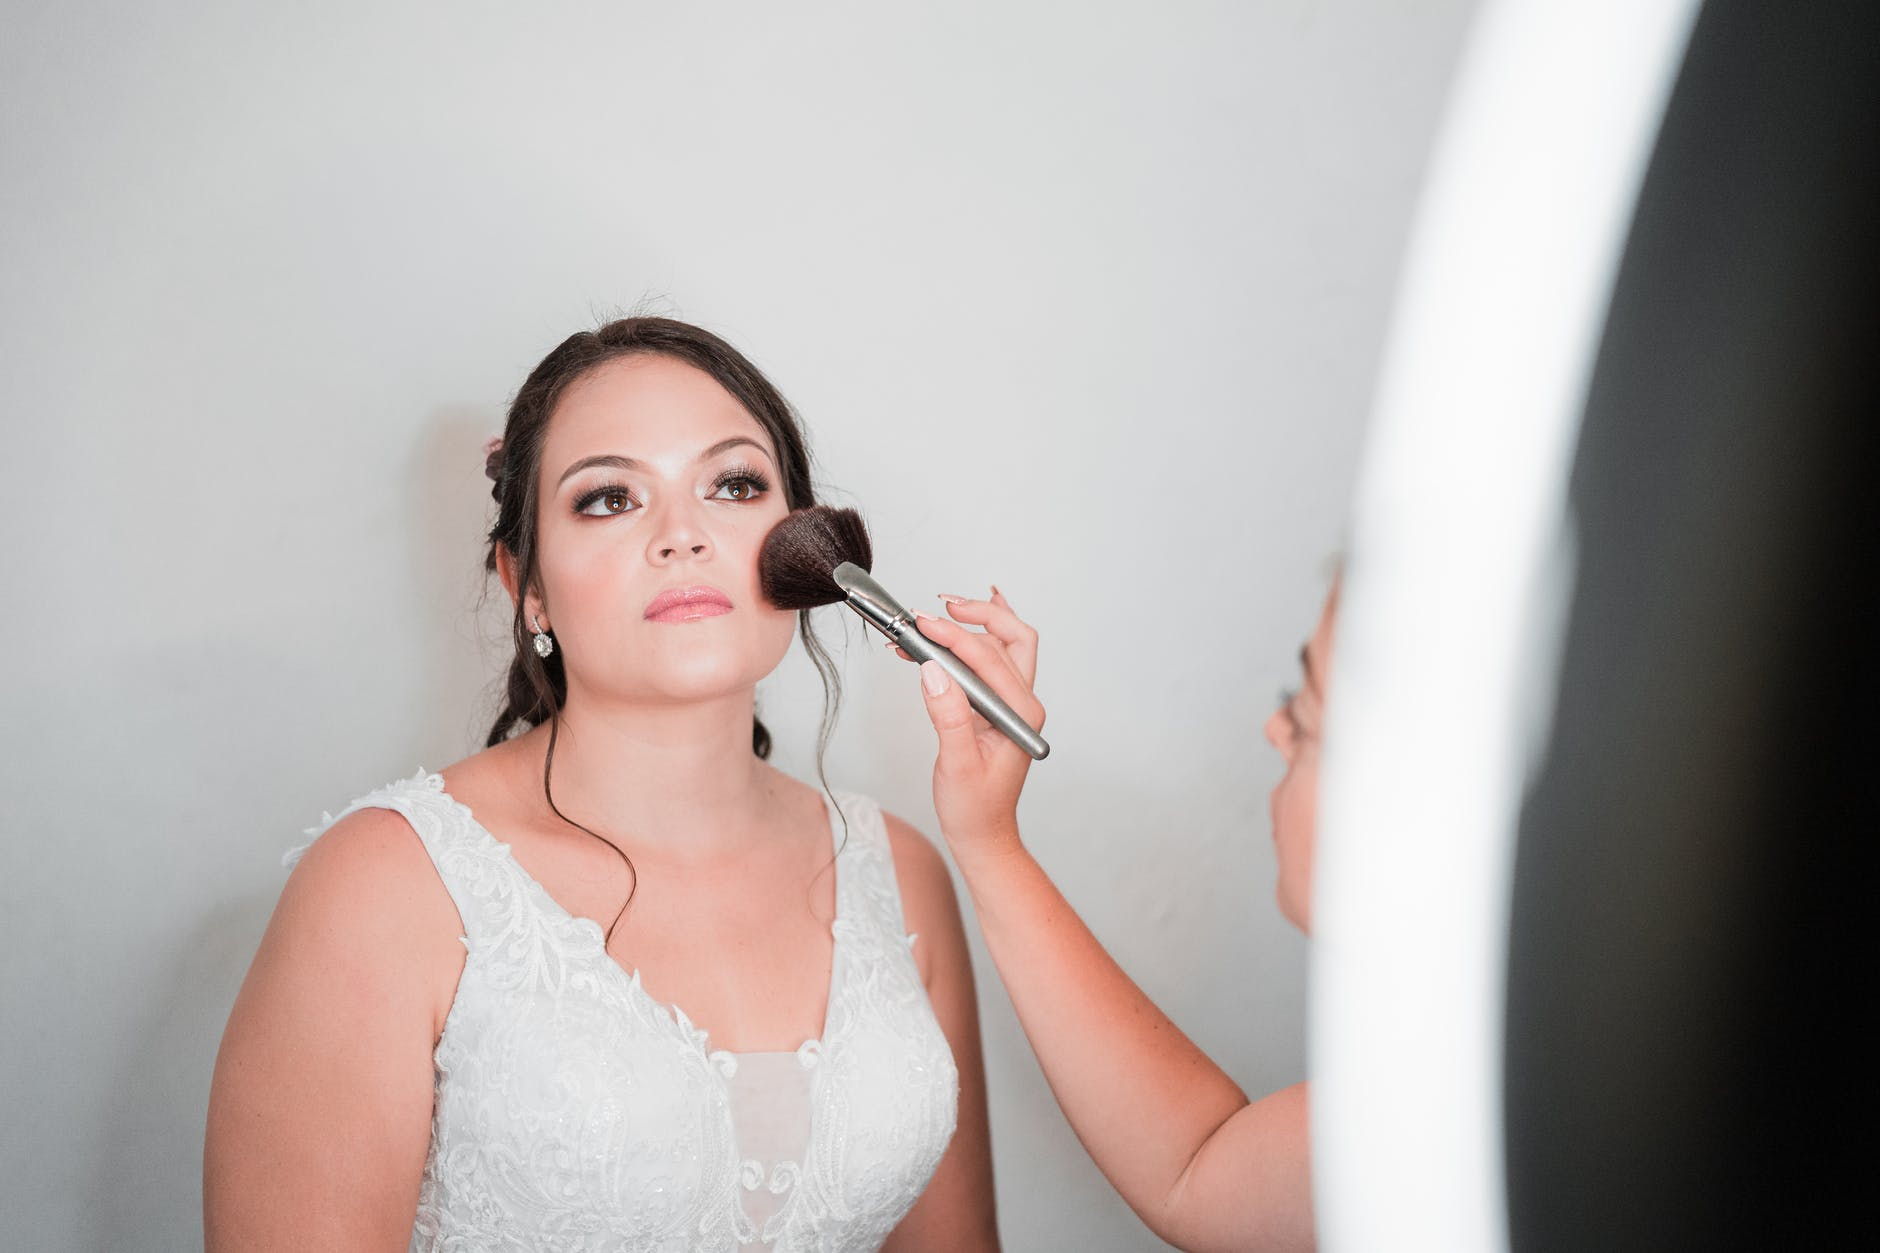 woman in bridal dress wearing makeup